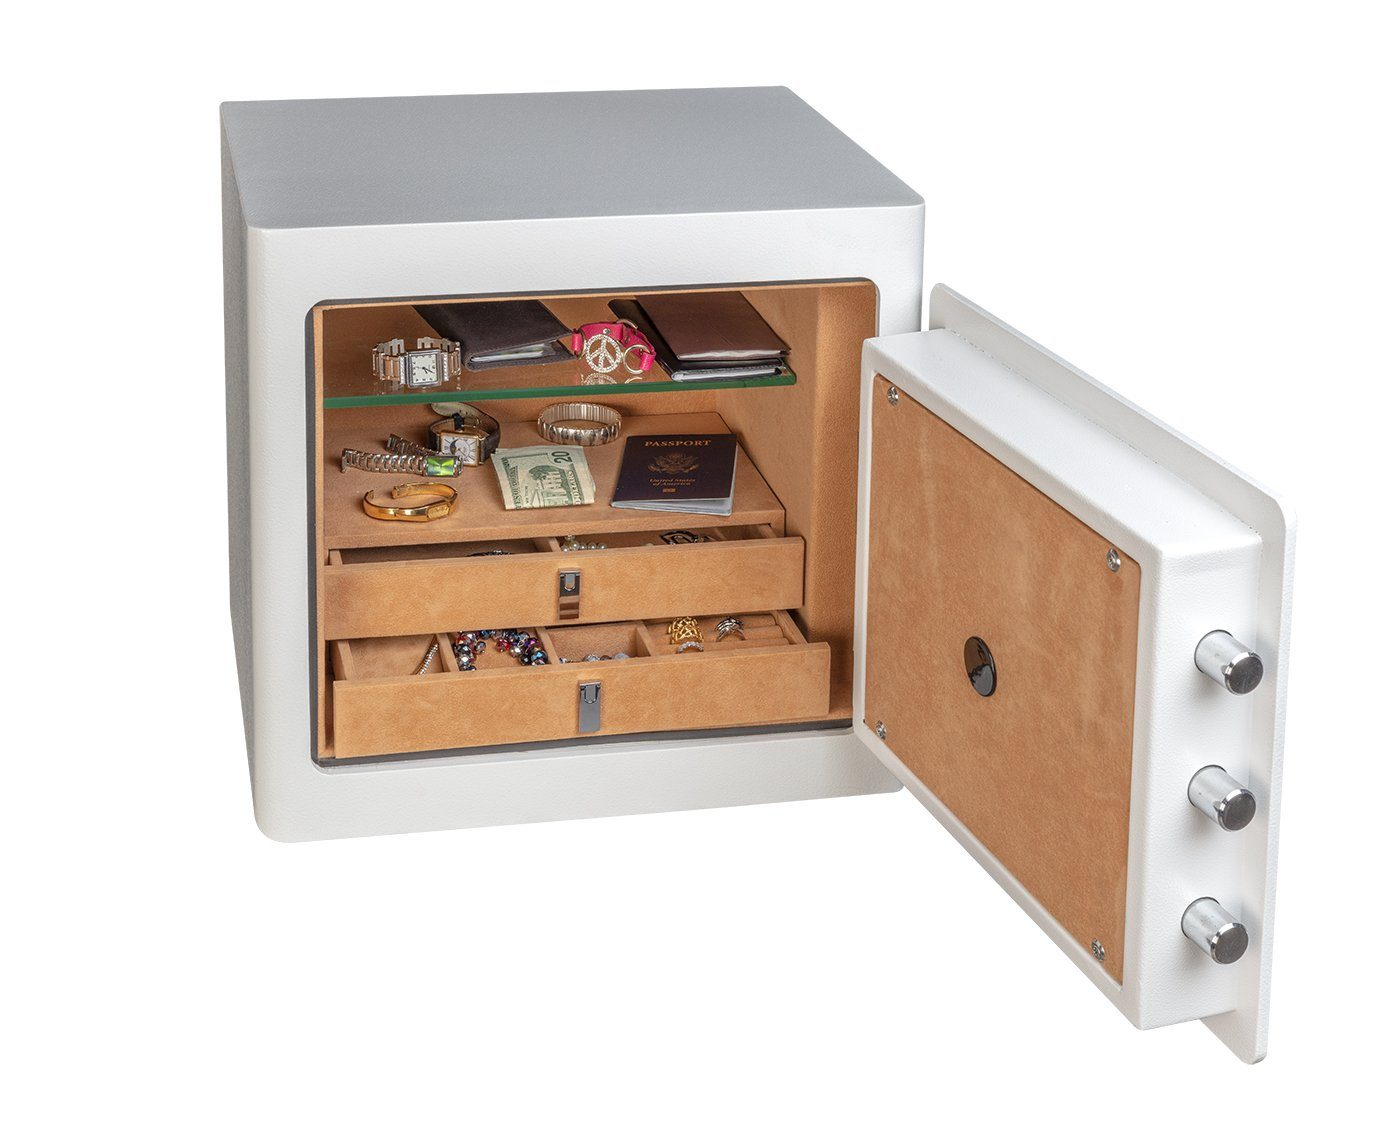 Burglar Fire Safe Products - Gardall JS1718-W-C Jewelry Safe